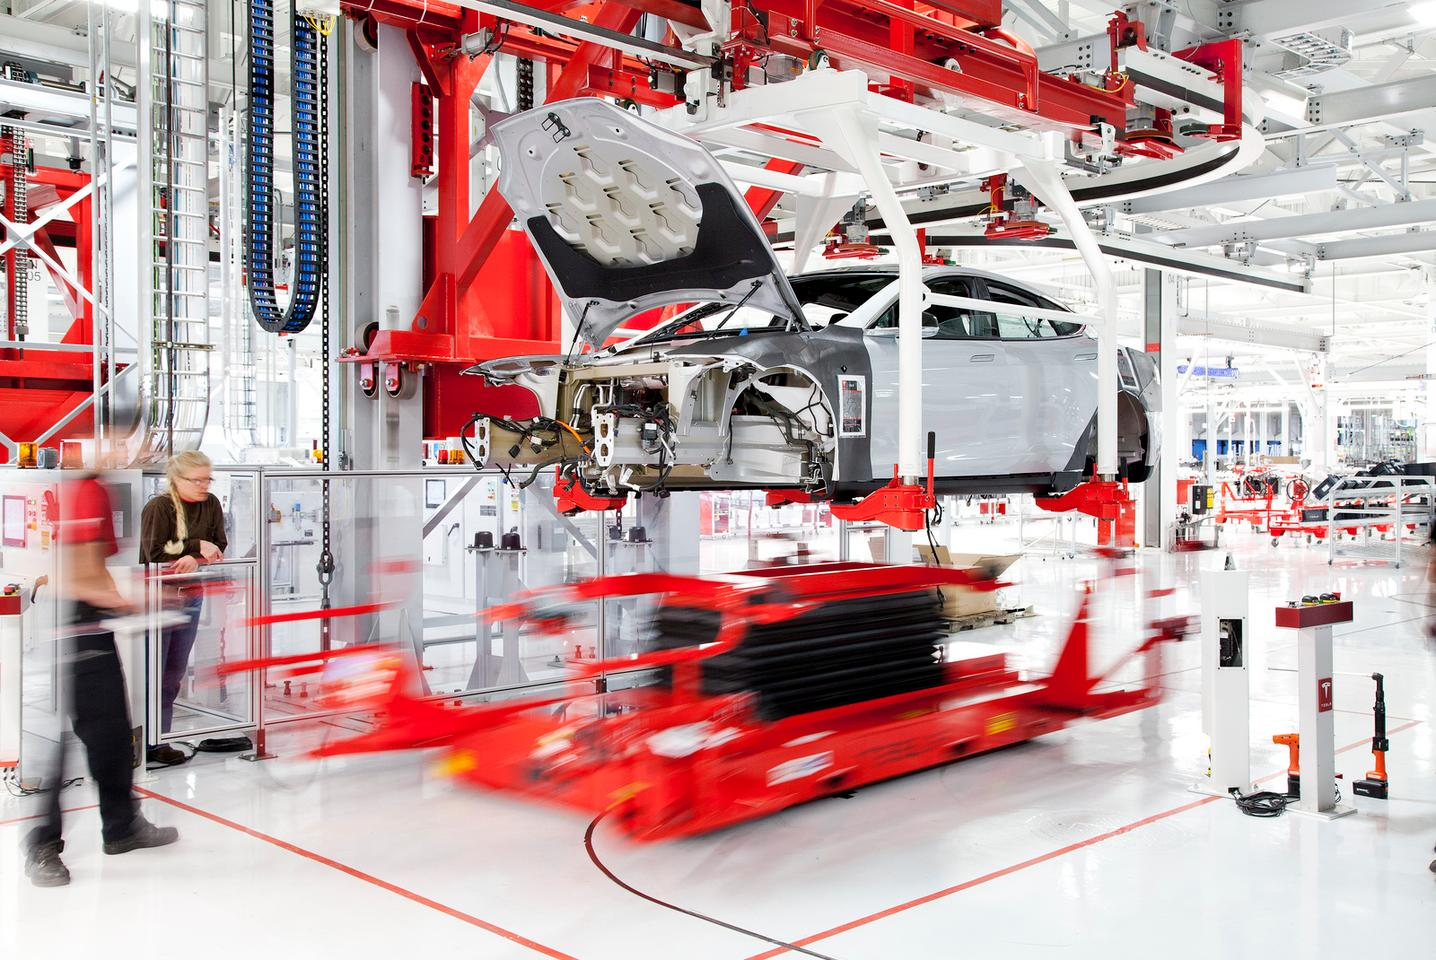 Automated swapping technology is identical to the system used in Tesla's factory